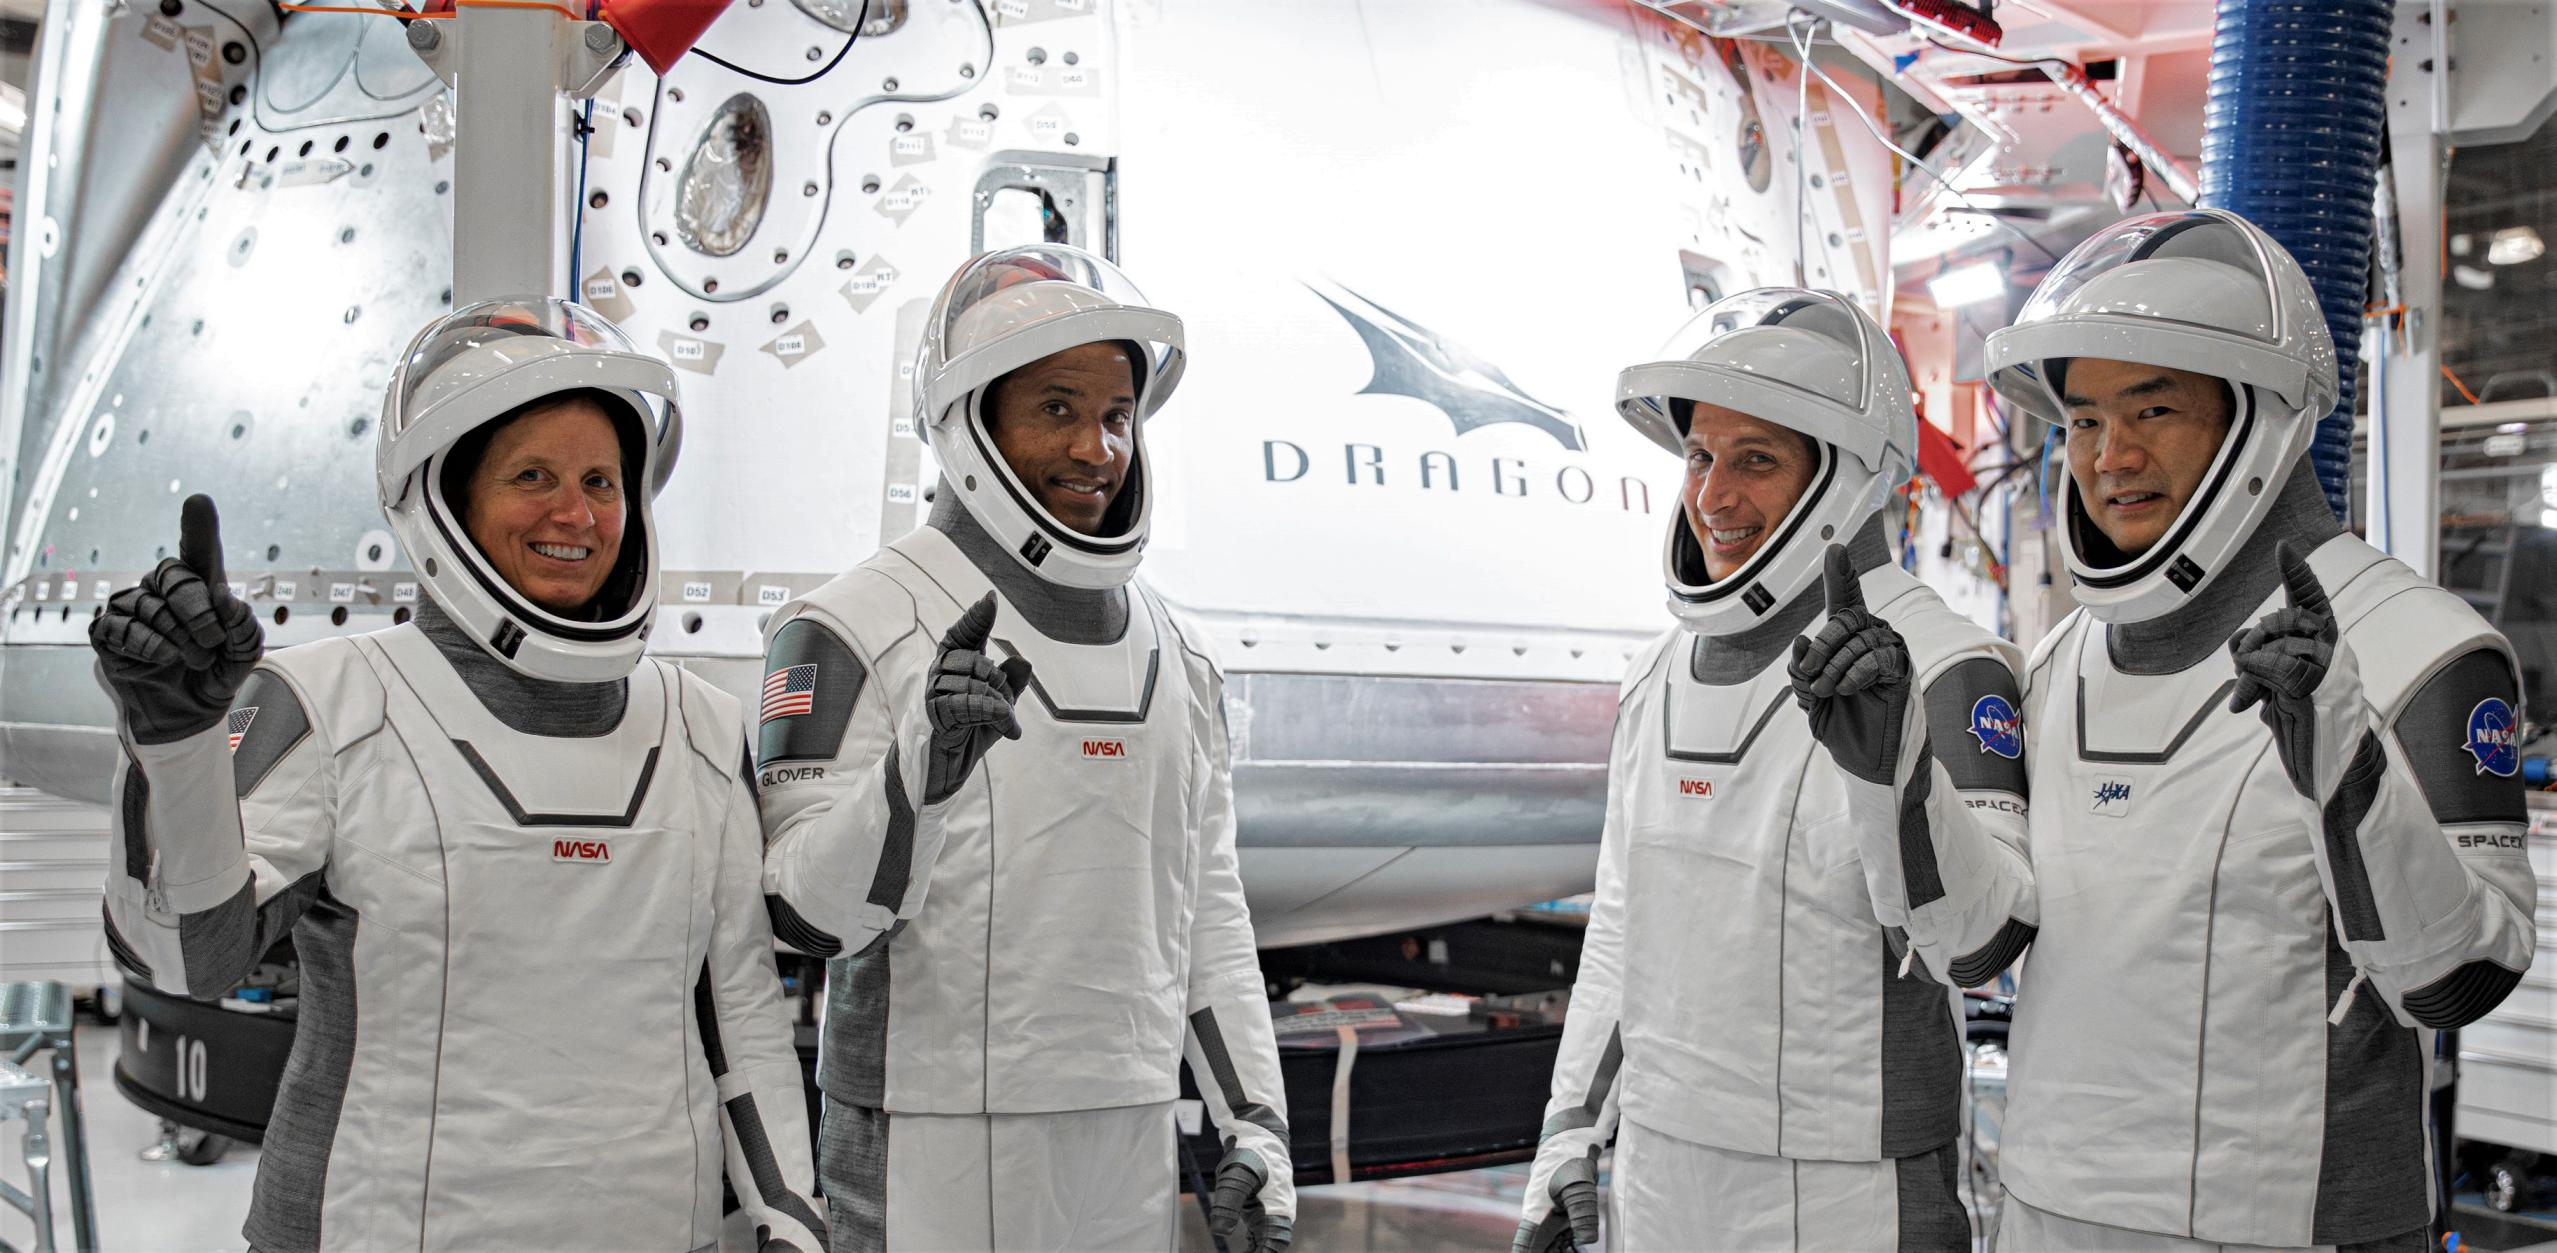 Crew-1 Crew Dragon Hopkins Noguchi Glover Walker Aug 2020 training (SpaceX) 3 crop (c)